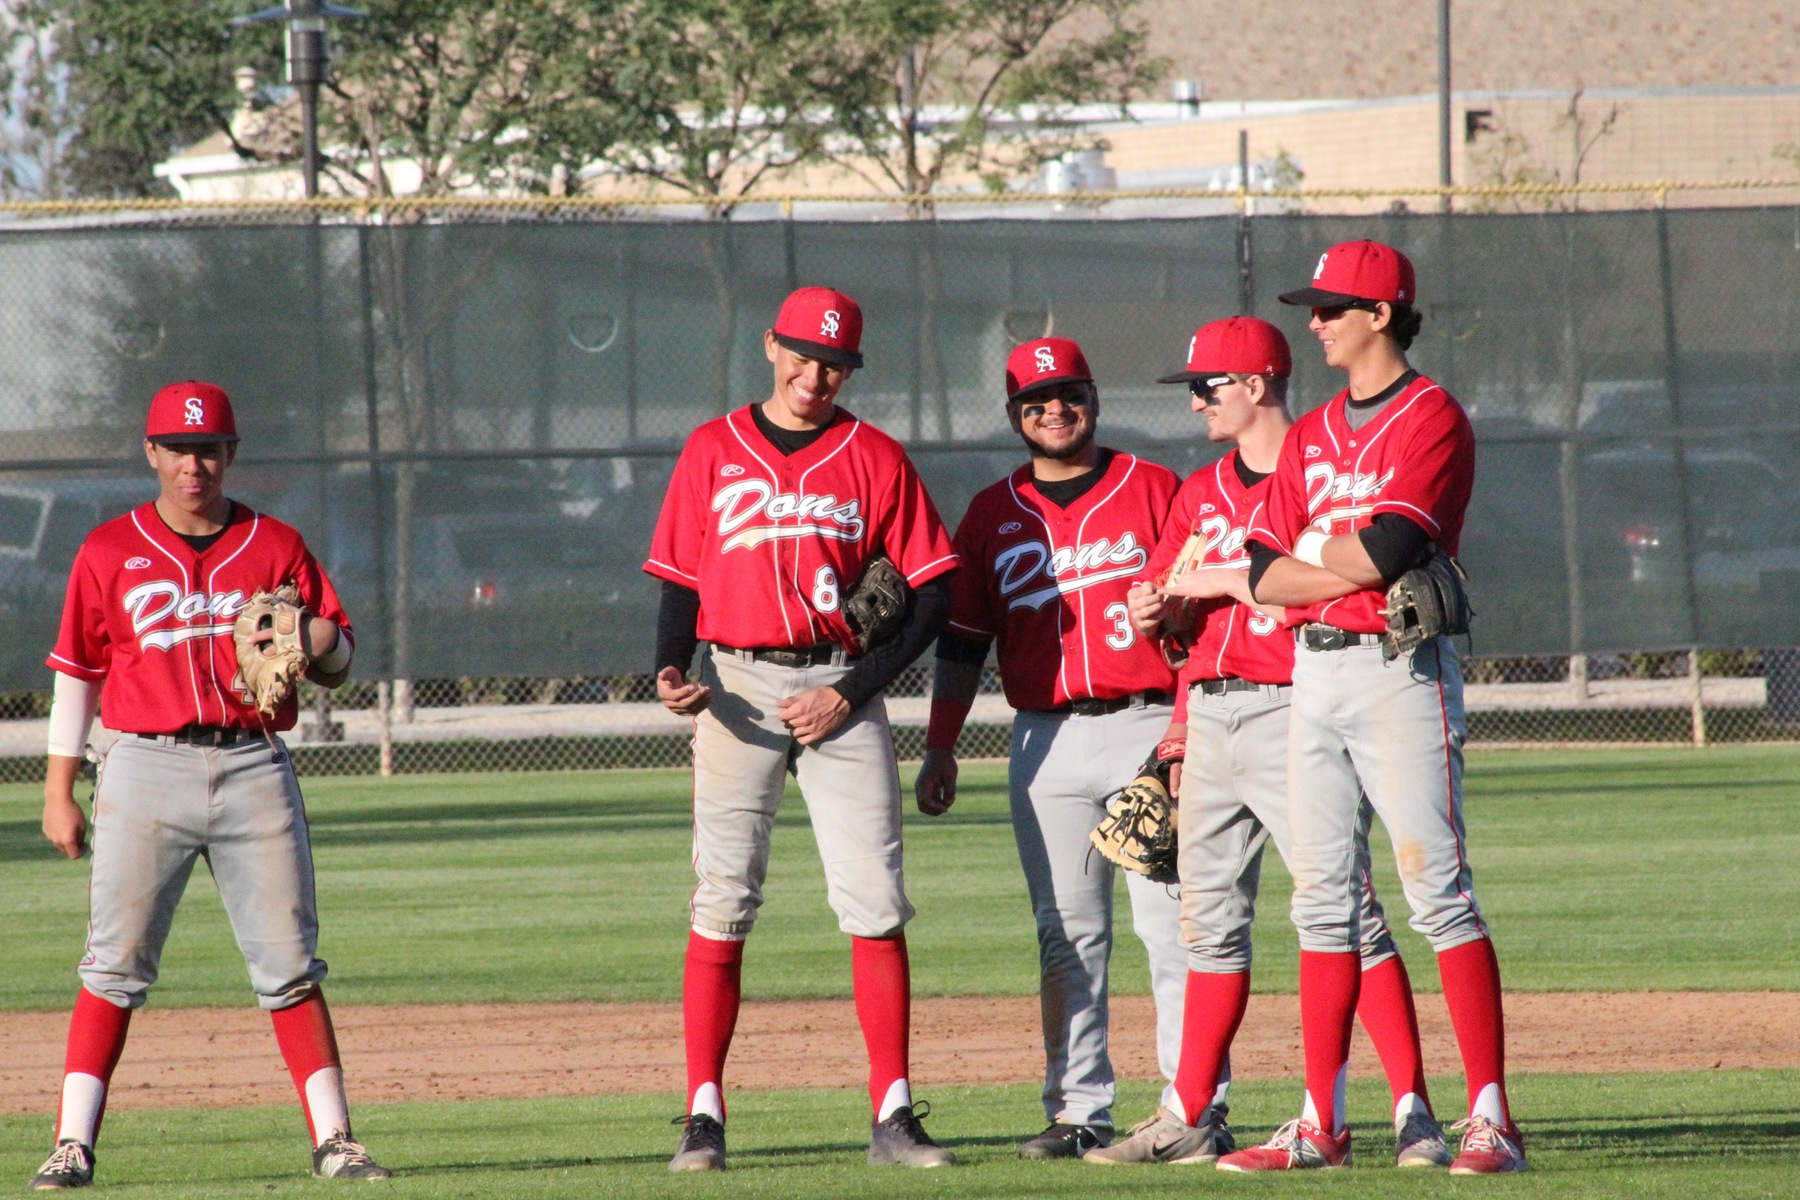 Askins Hits Walk Off Three Run Bomb to Knock Off Undefeated Chaffey